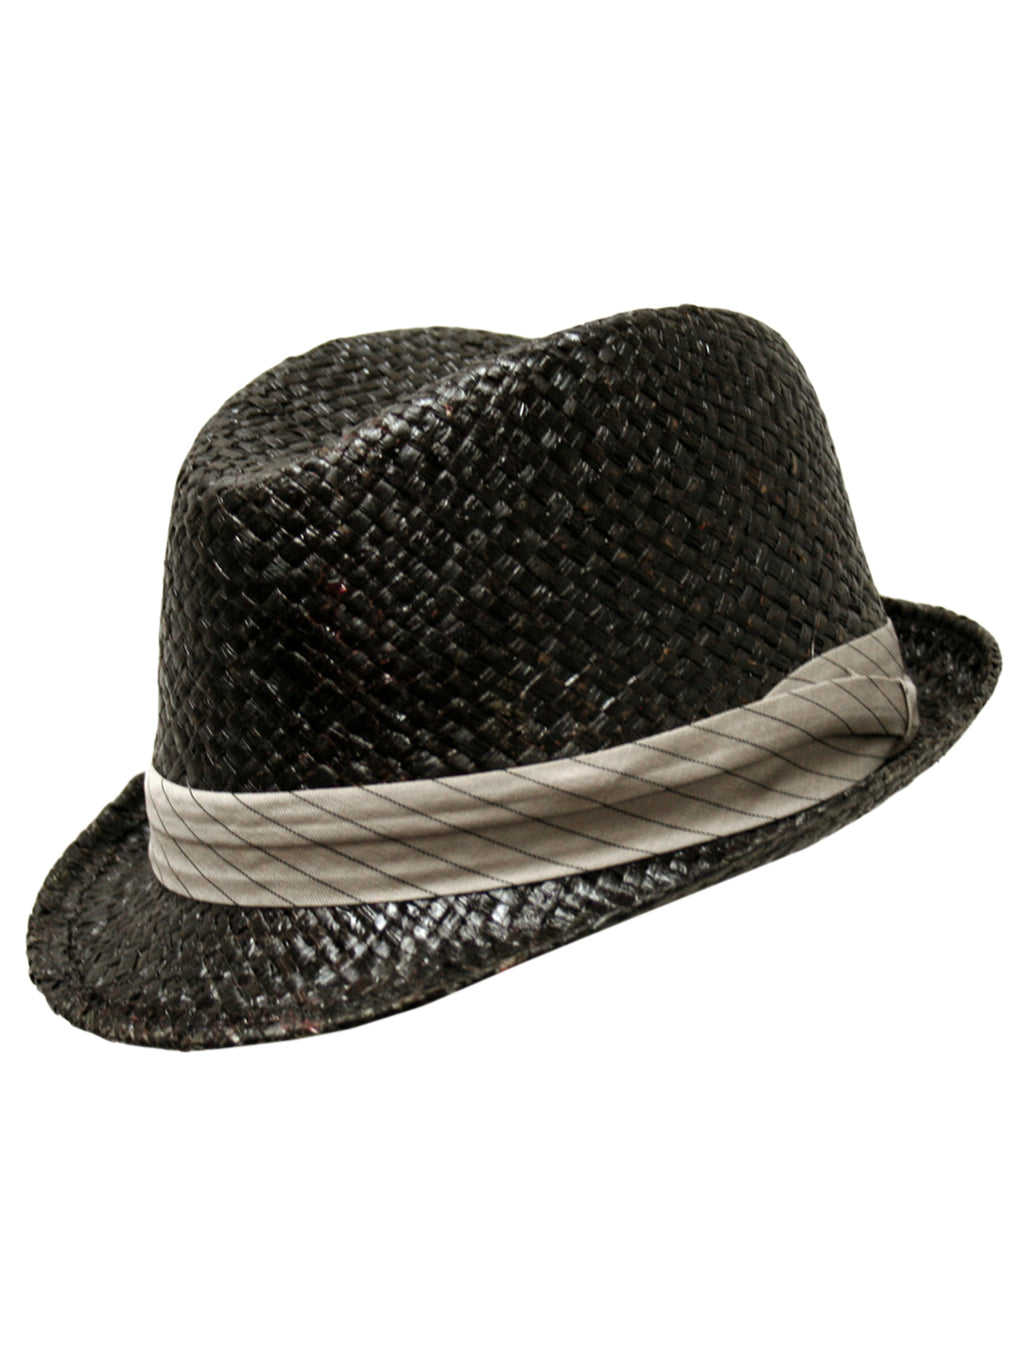 Black Woven Fedora Hat With Pinstriped Hat Band